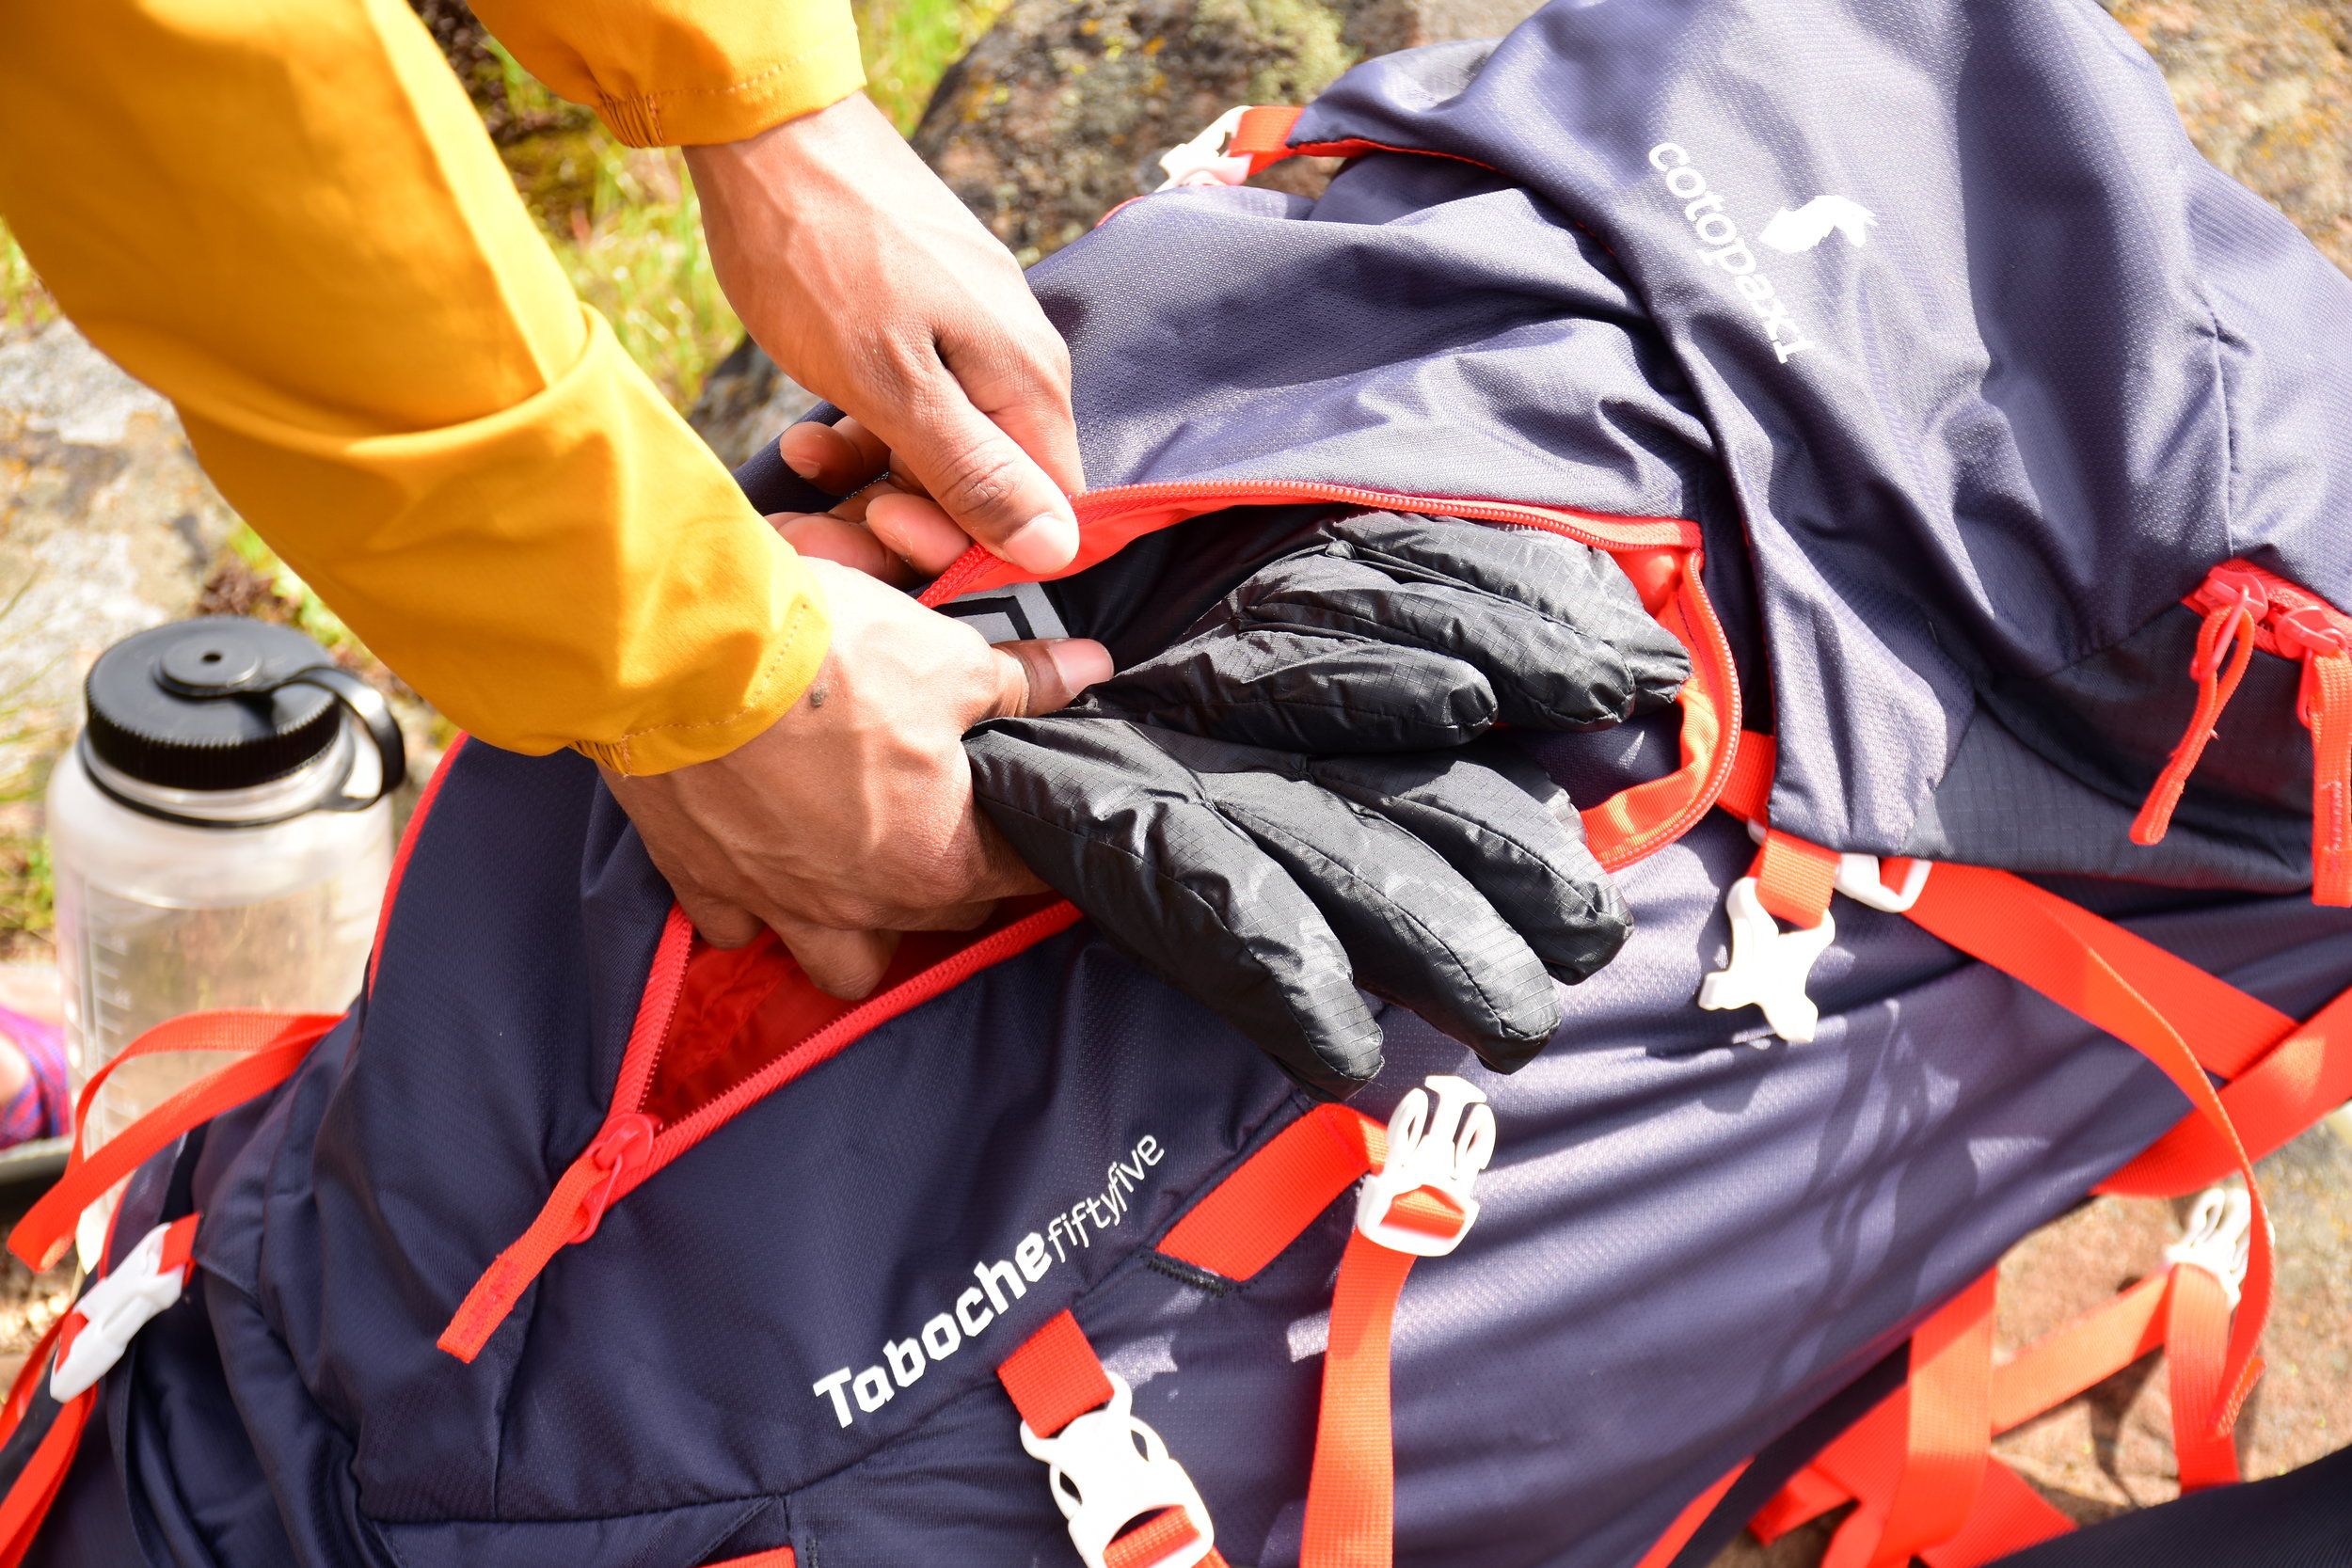 Never upend your entire pack in search of gloves again! Just store them here in one of the Taboche's easily accessible exterior storage pockets.  Photo courtesy of Nathan Kaul